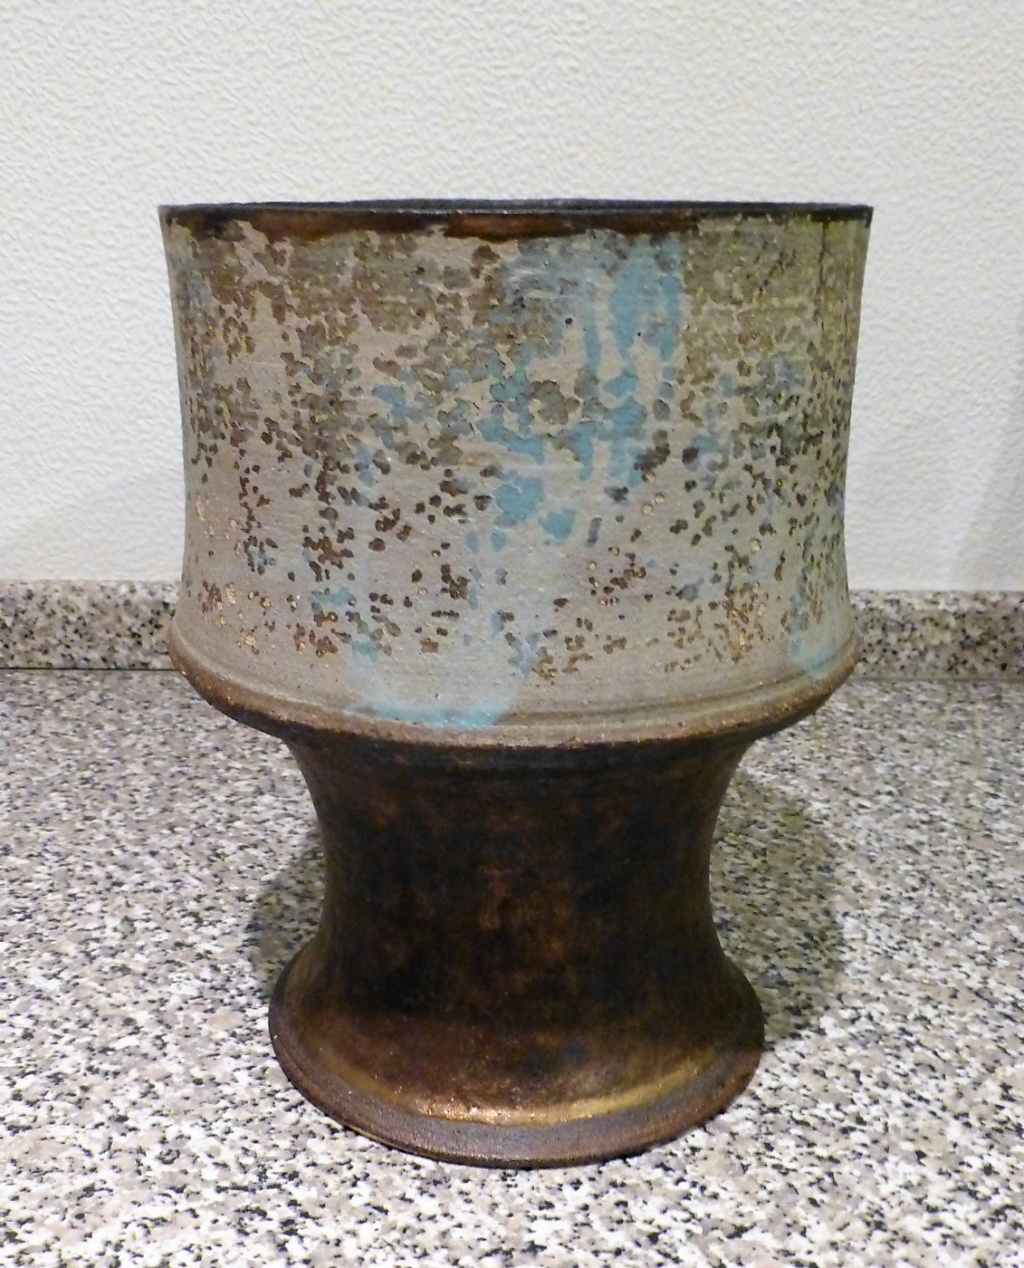 Speckled Pedestal bowl with Copper Lustre RMG?? P1130611